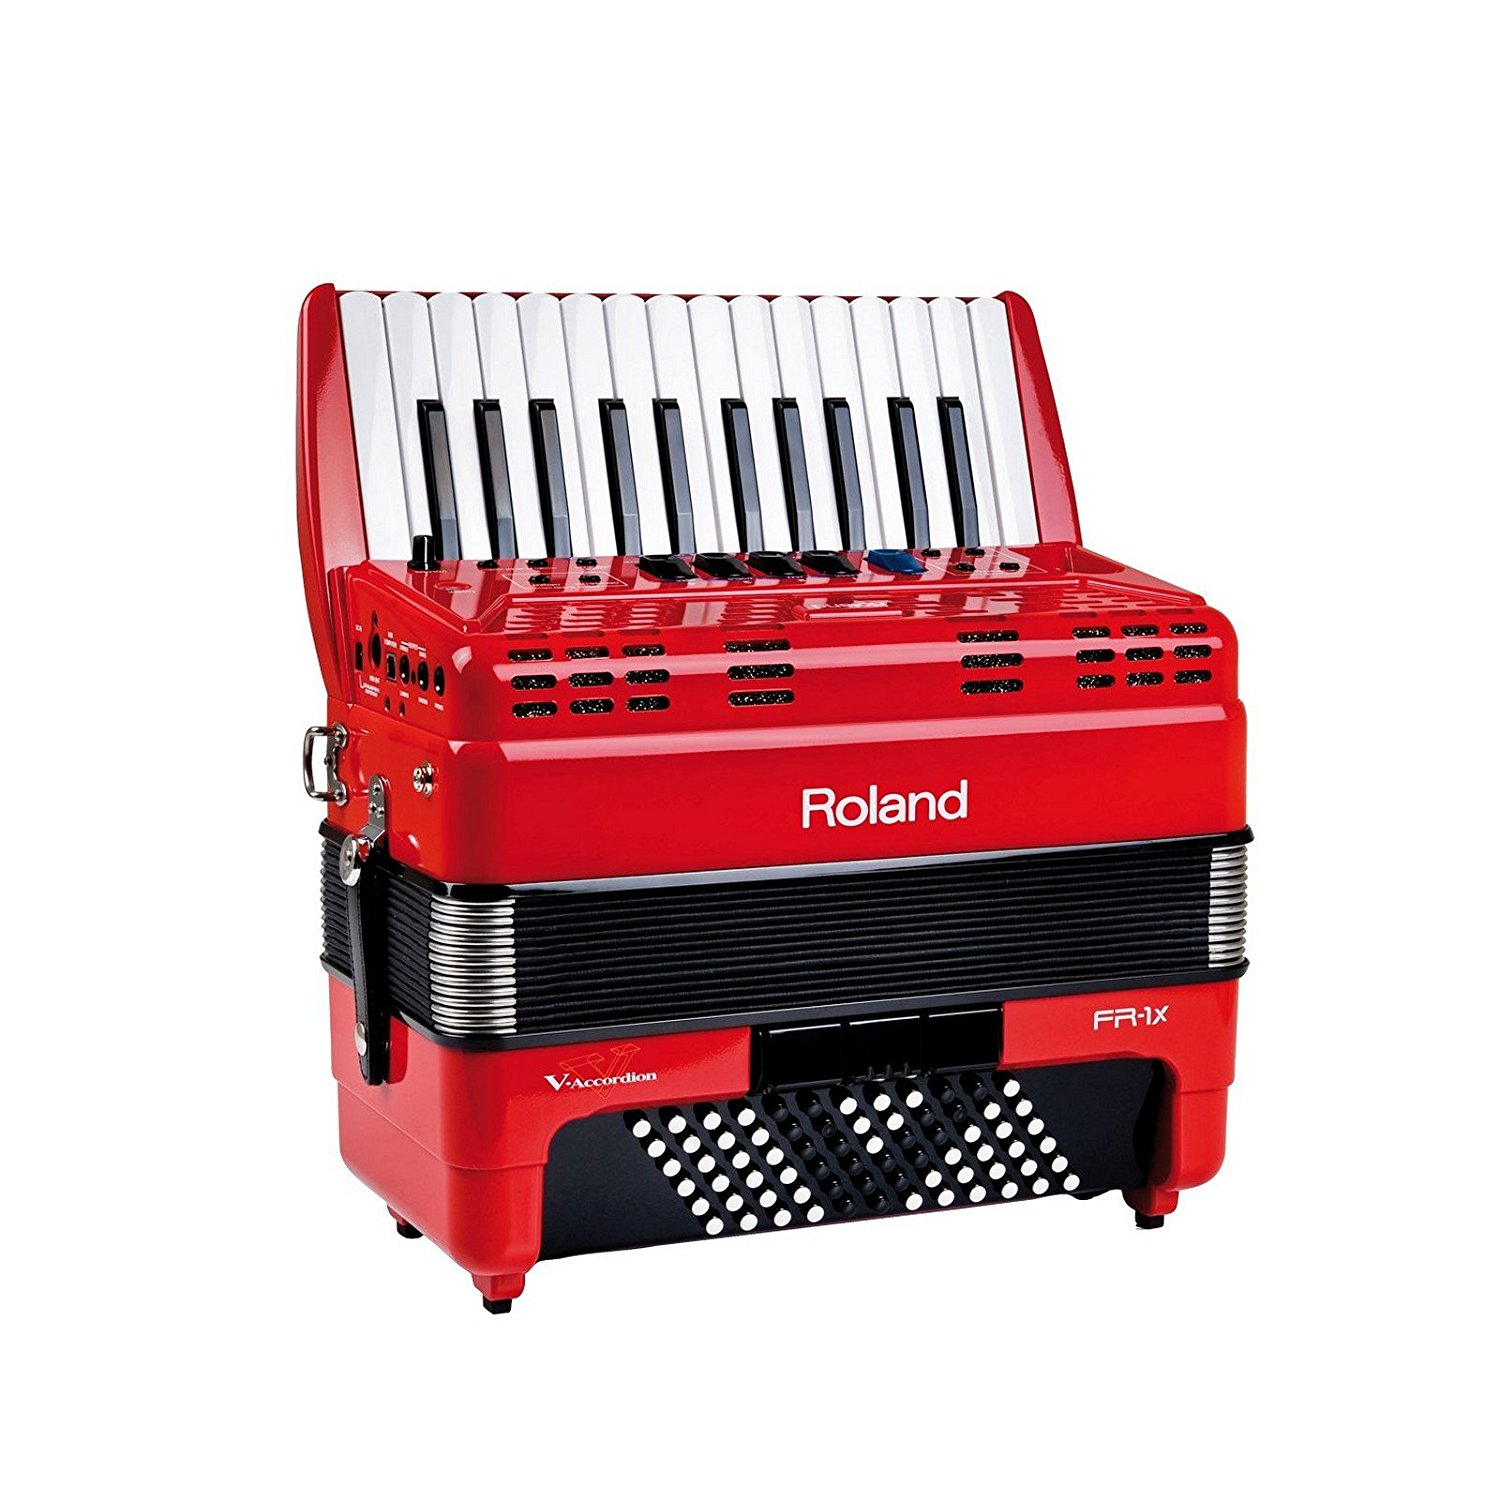 Roland FR-1x Piano Accordion – MIDI Accordion (Black or Red)